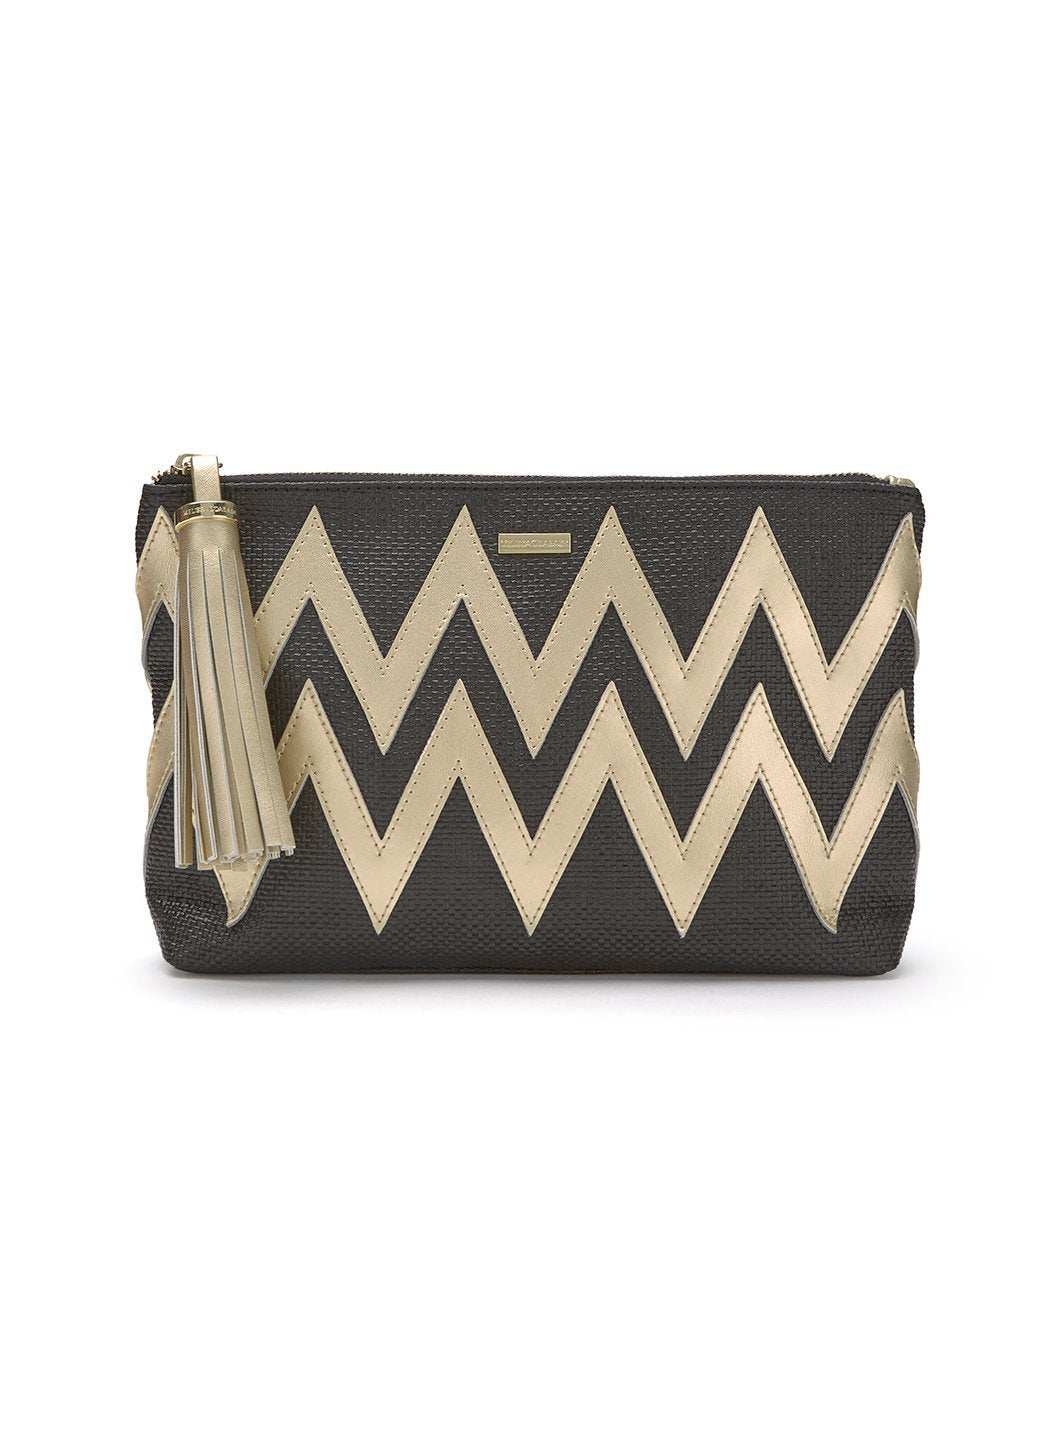 crete zigzag clutch bag black gold 2019